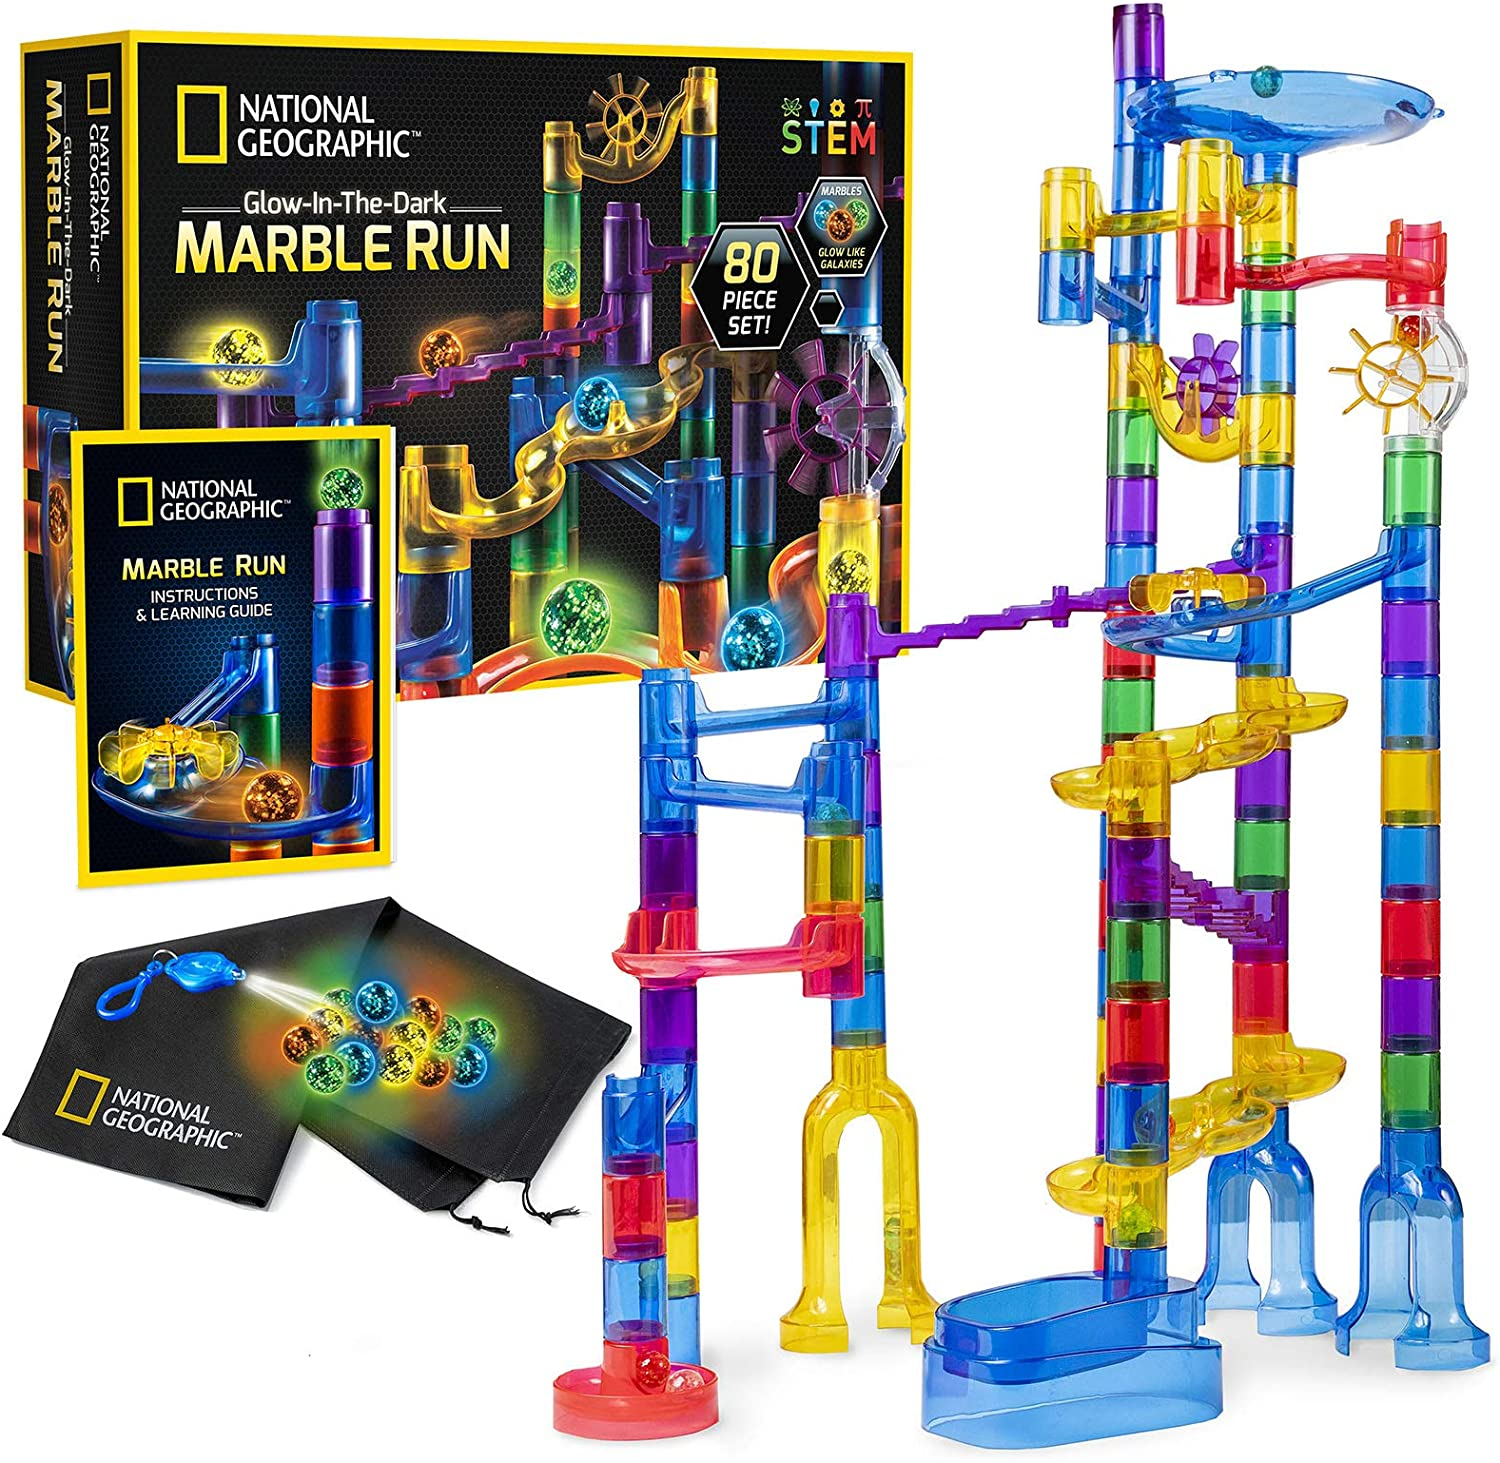 NATIONAL GEOGRAPHIC Glow-In-The-Dark Marble Run, 80-Piece